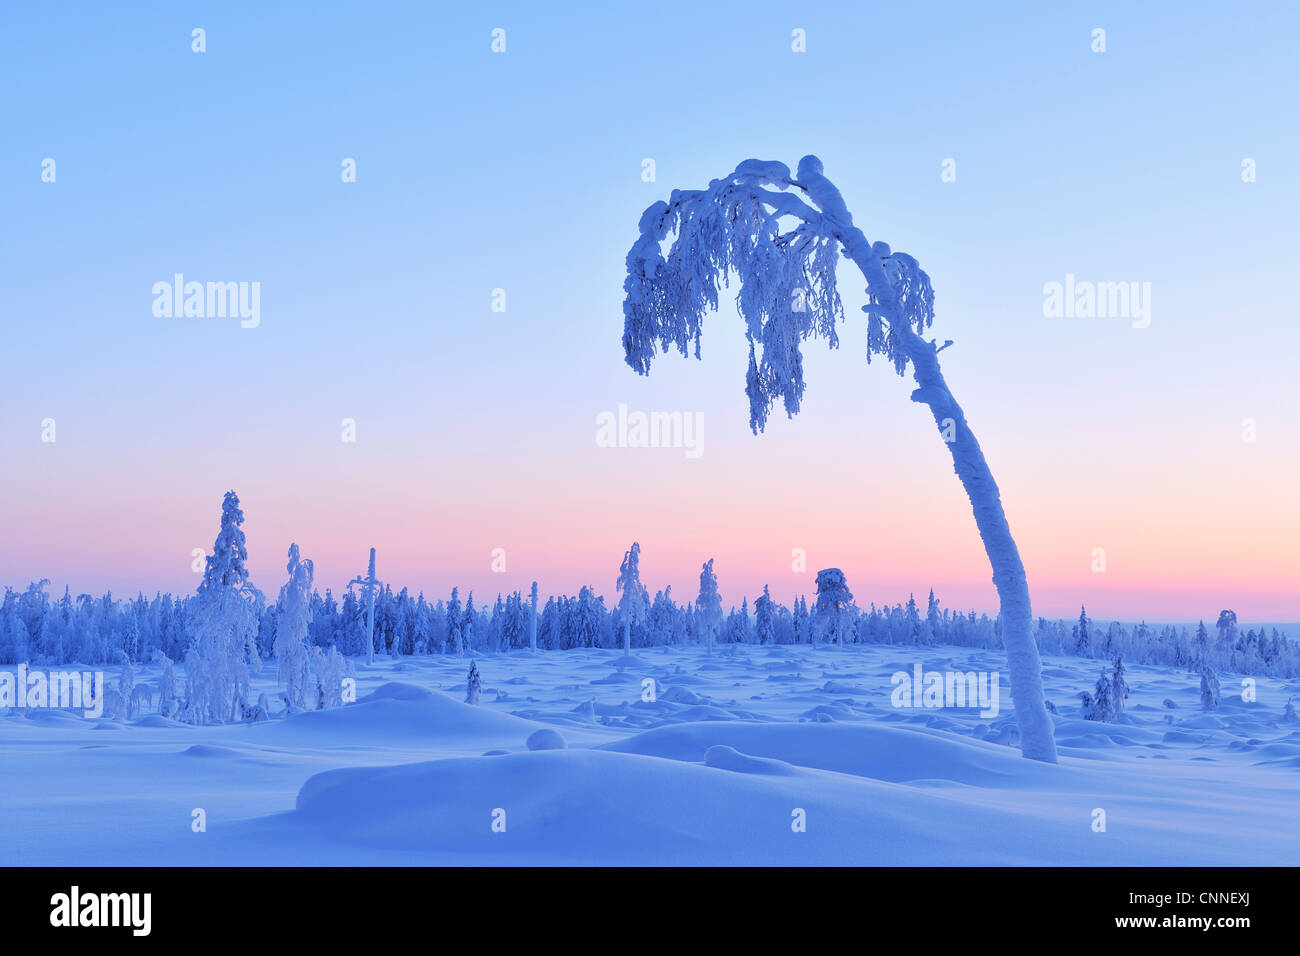 Snow Covered Tree at Dusk, Nissi, Northern Ostrobothnia, Finland Stock Photo